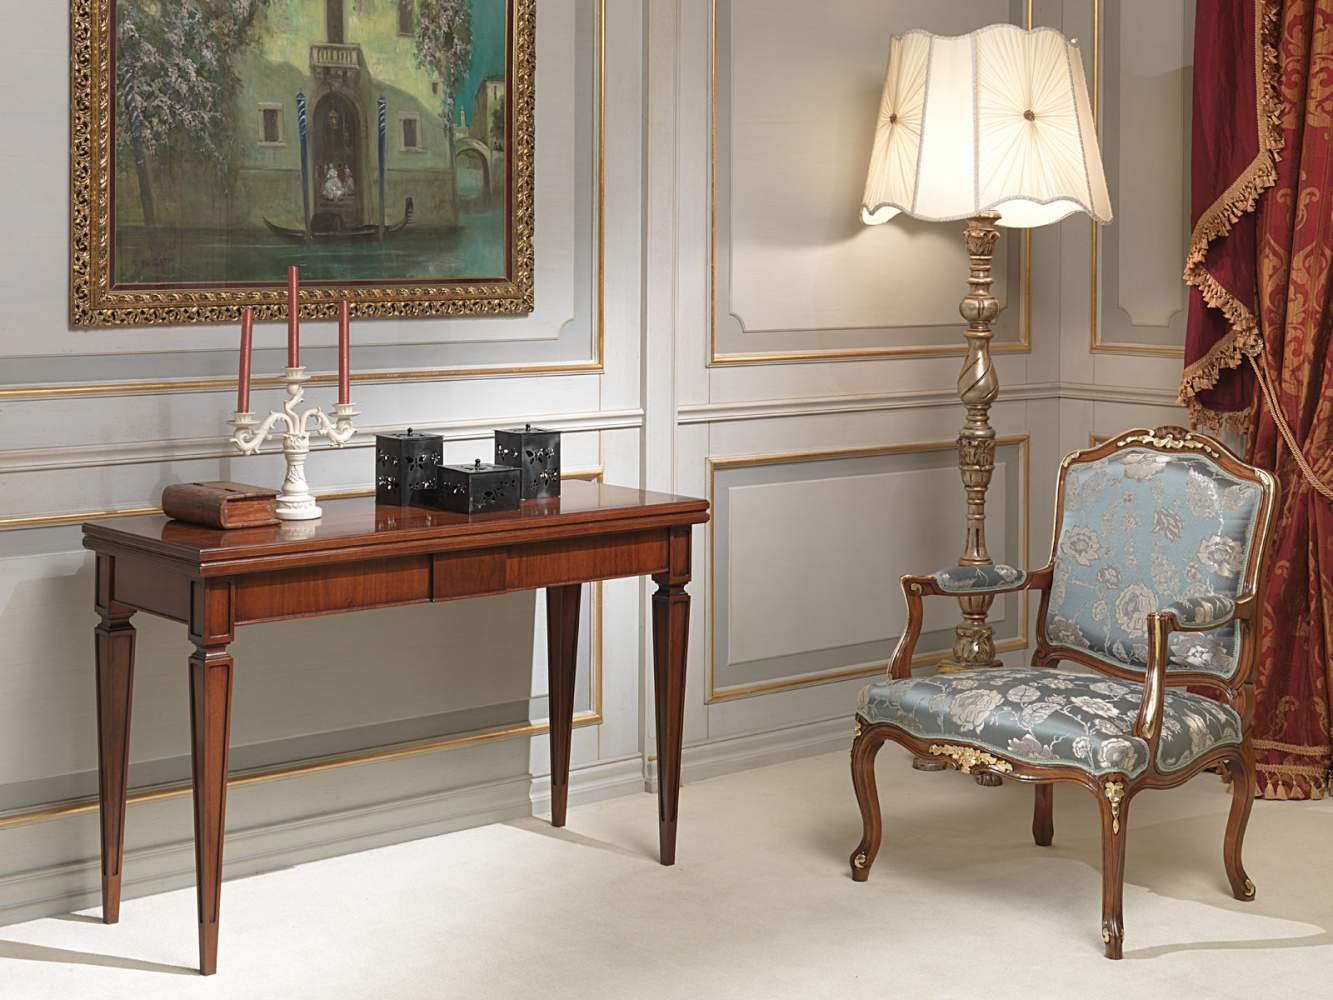 Classic extendable console to two meters and a half of length for use as table